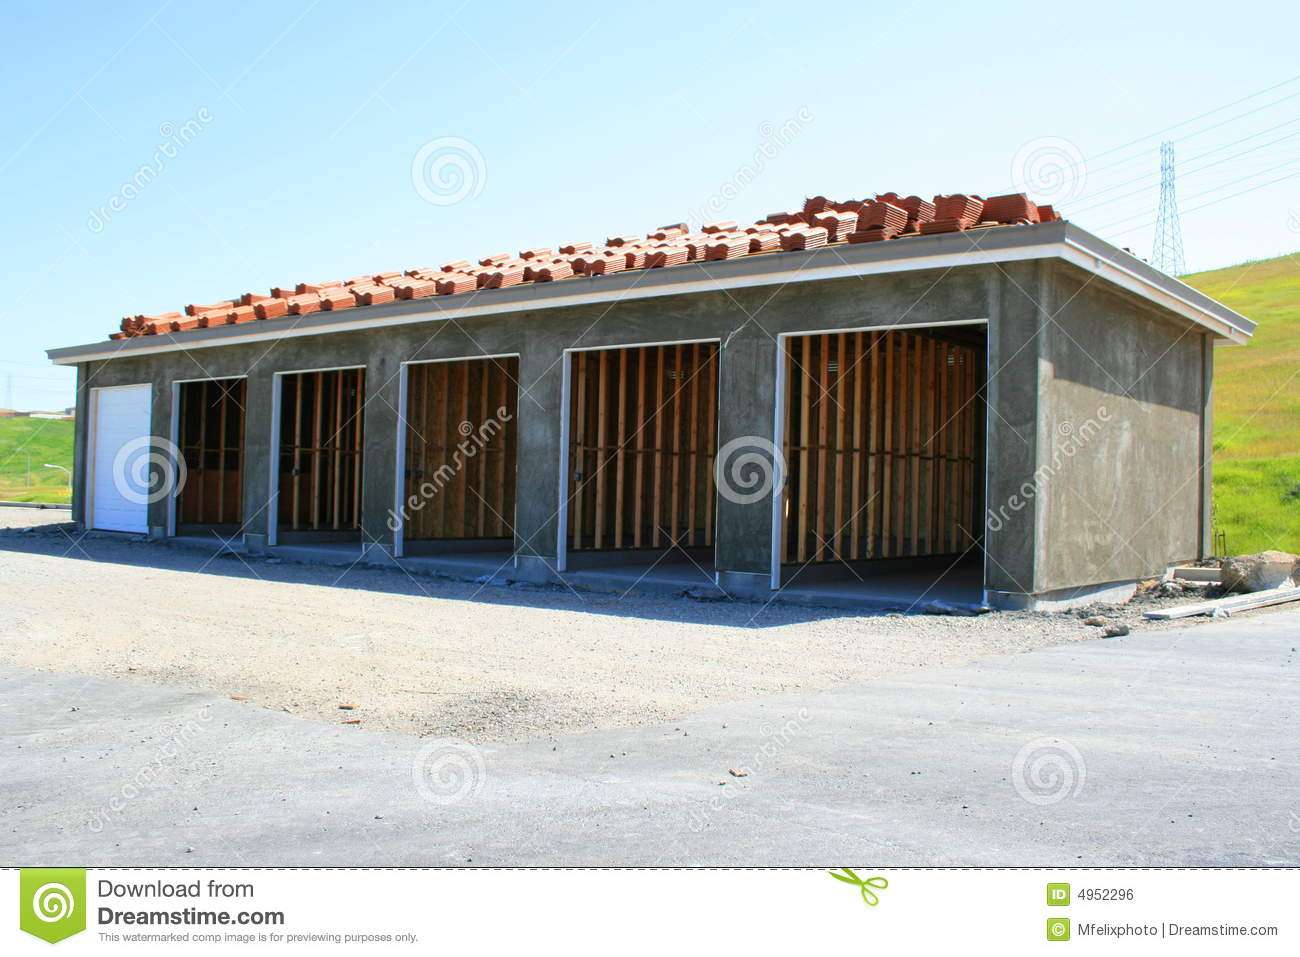 Building garage under house cost